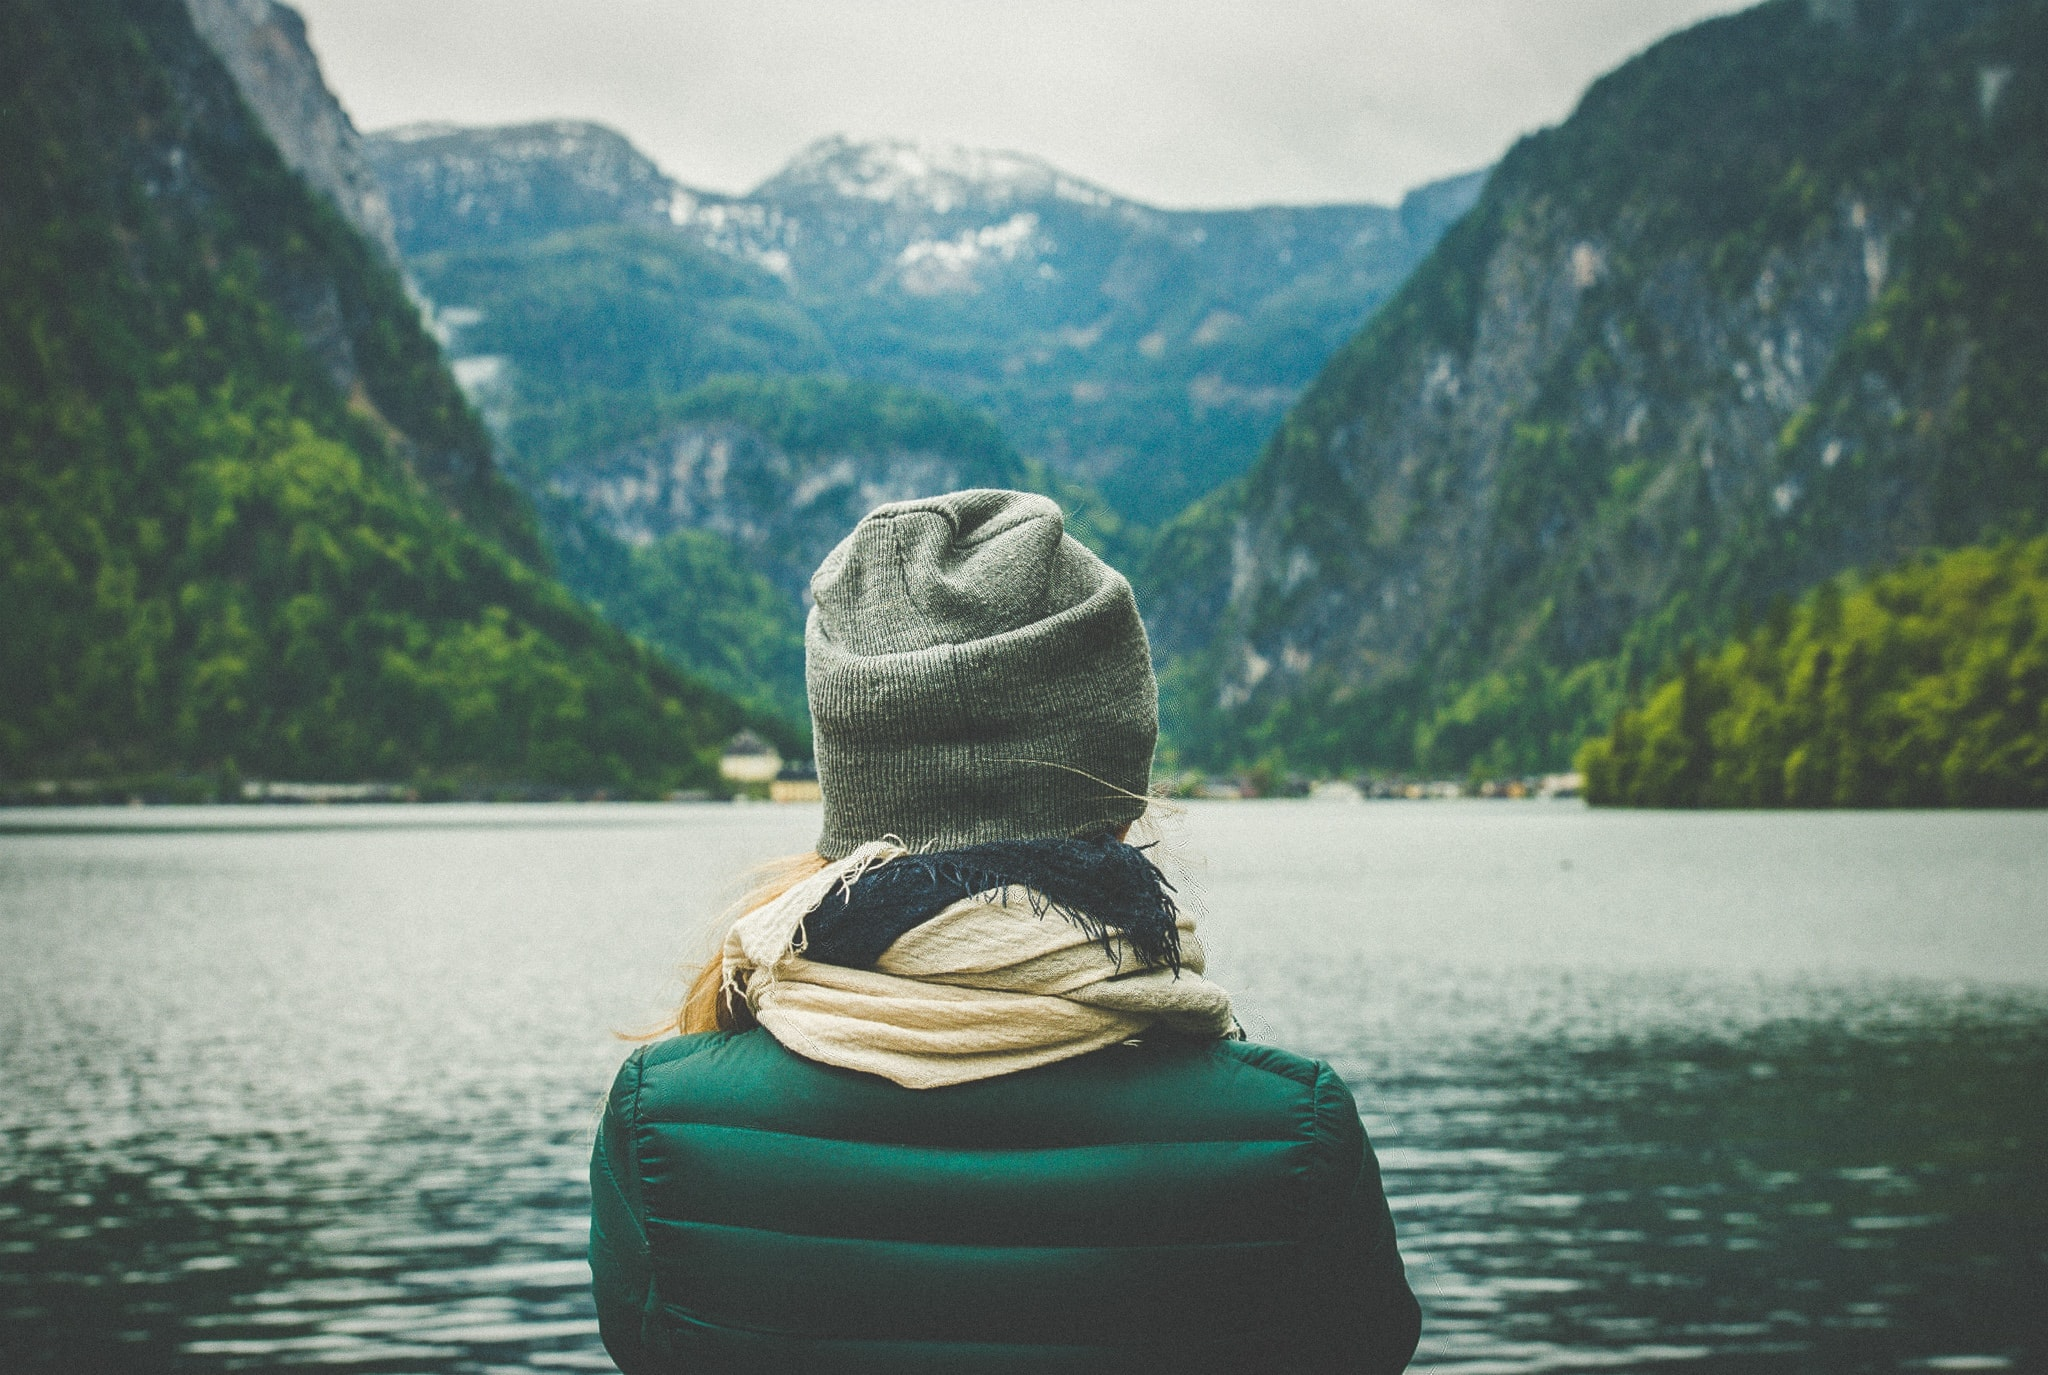 a woman looks out at a lake and mountains